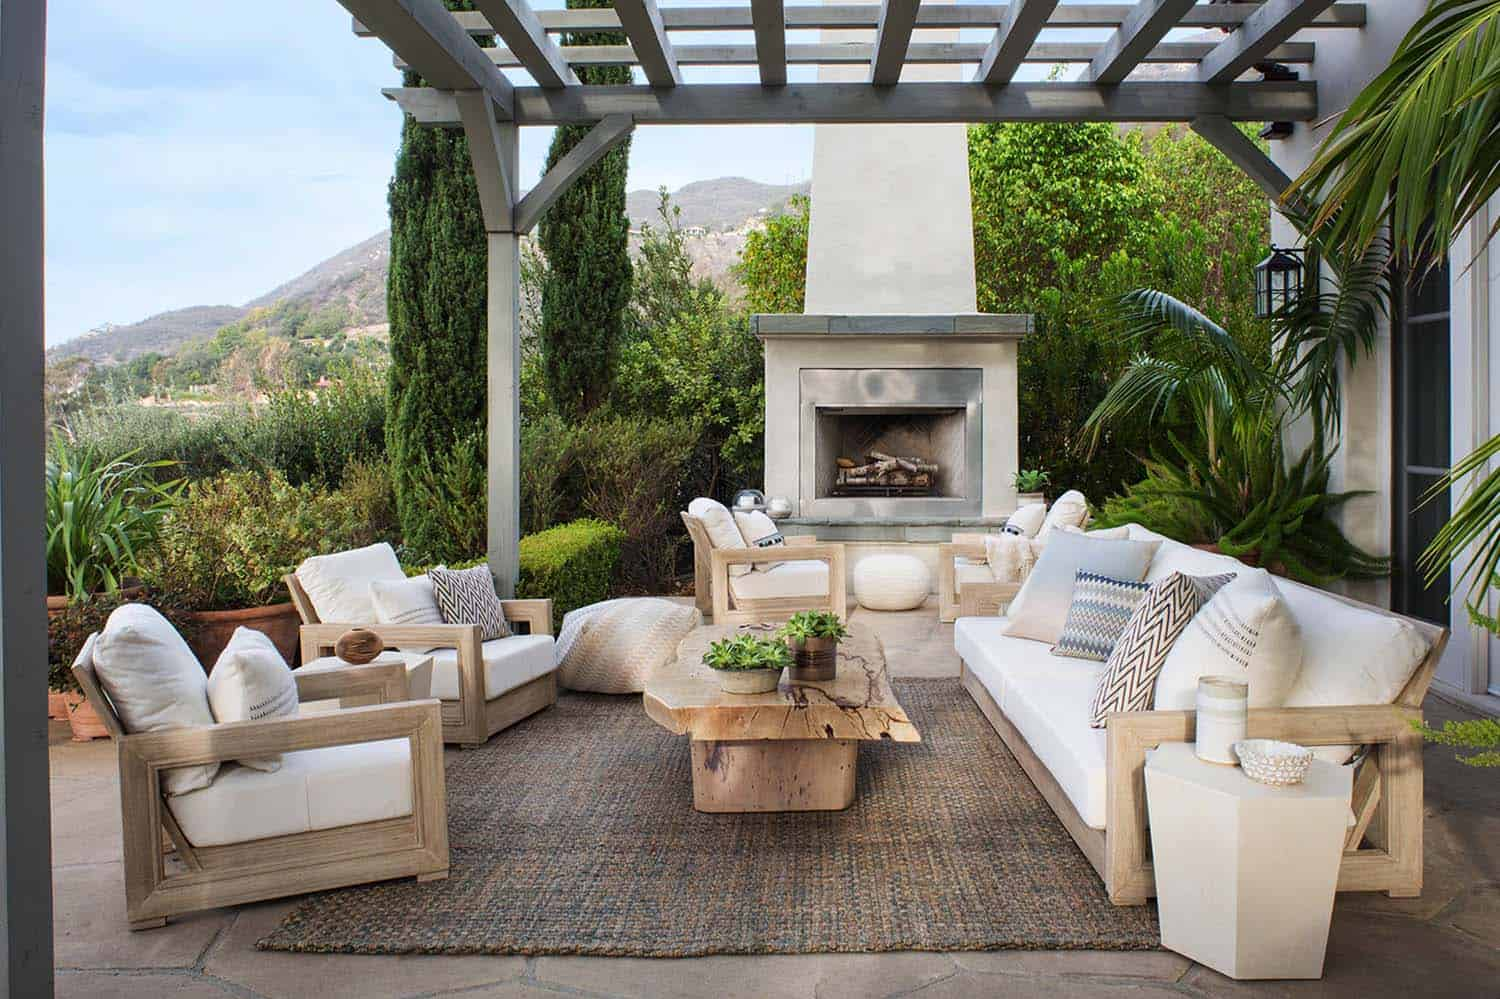 35 Brilliant and inspiring patio ideas for outdoor living ... on Outdoor Living And Patio id=93286